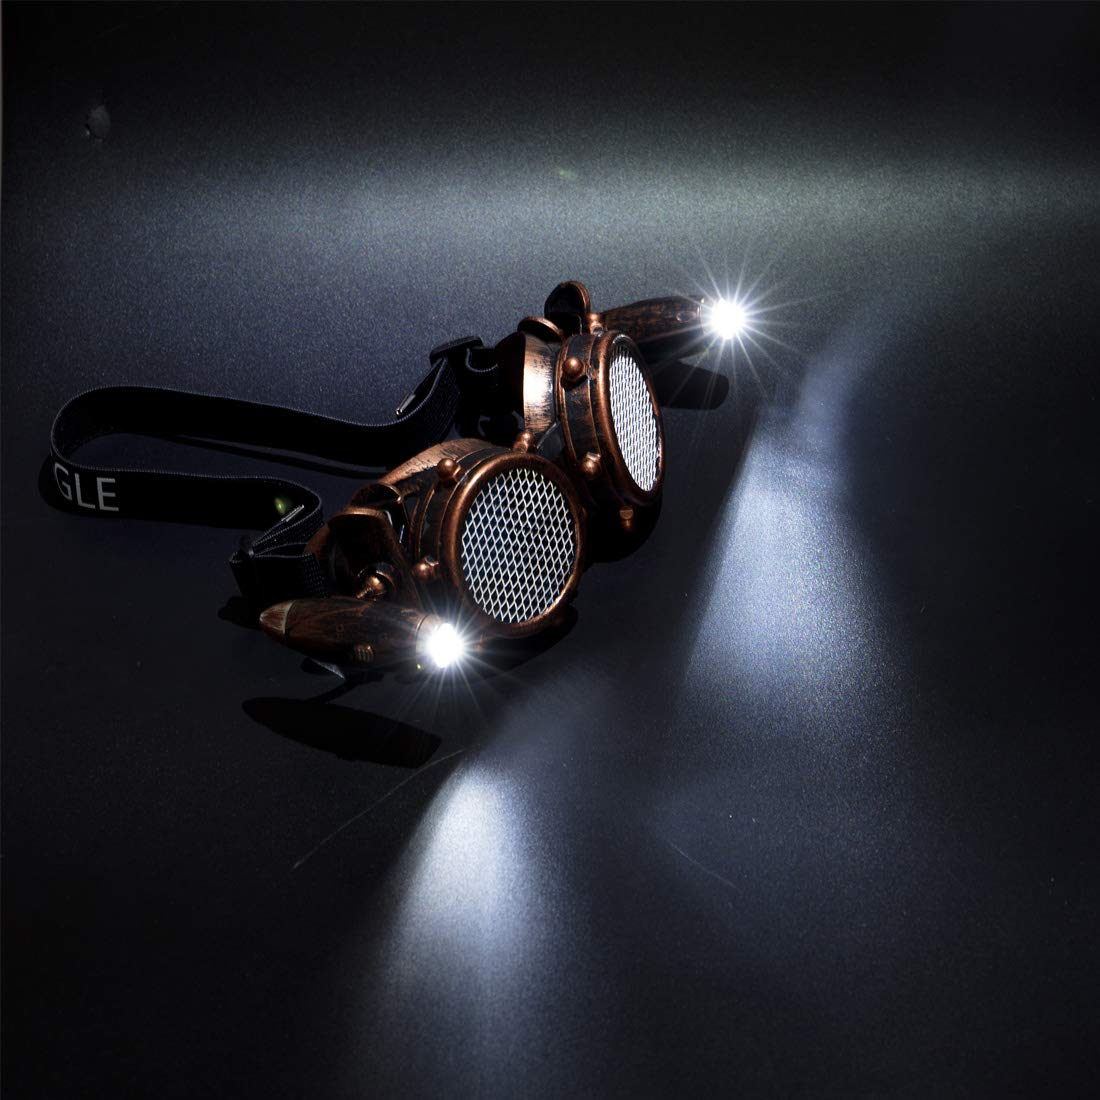 FLORATA Rivet Steampunk Goggles Firework Diffraction Prism Glasses Prism Refraction Sunglasses Cosplay Goggles